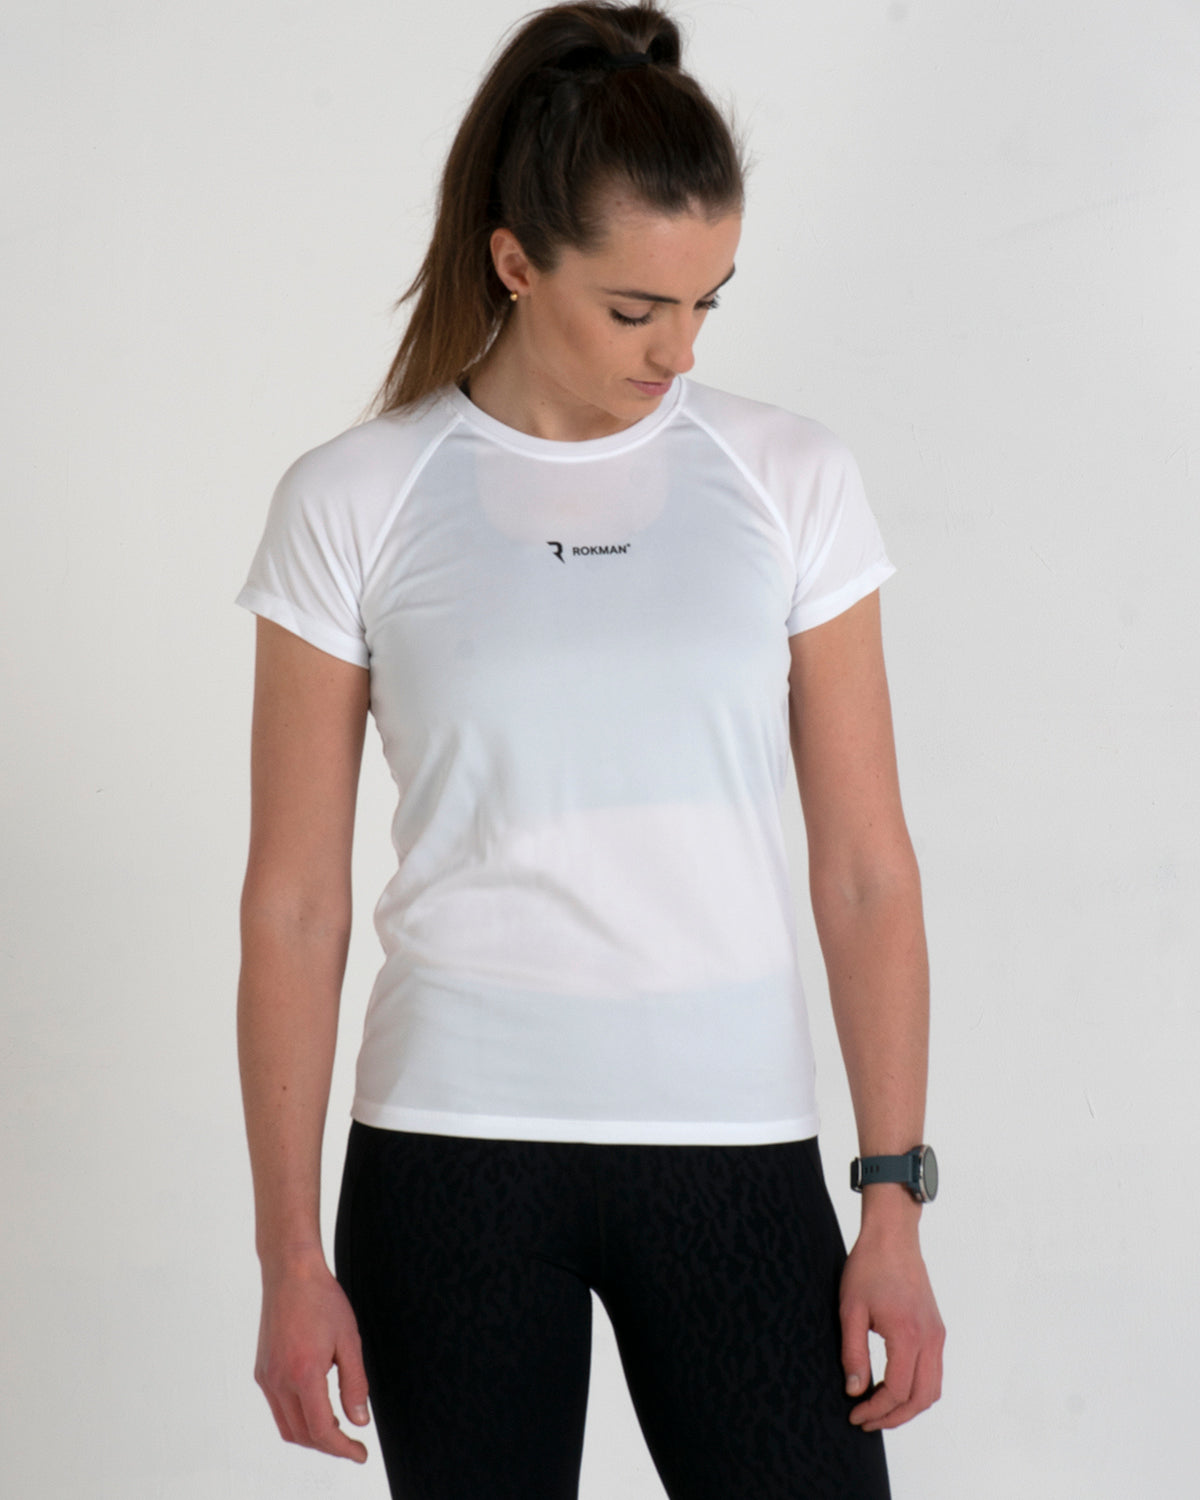 Rokman Ident Active-Dry Arctic White Female T-Shirt